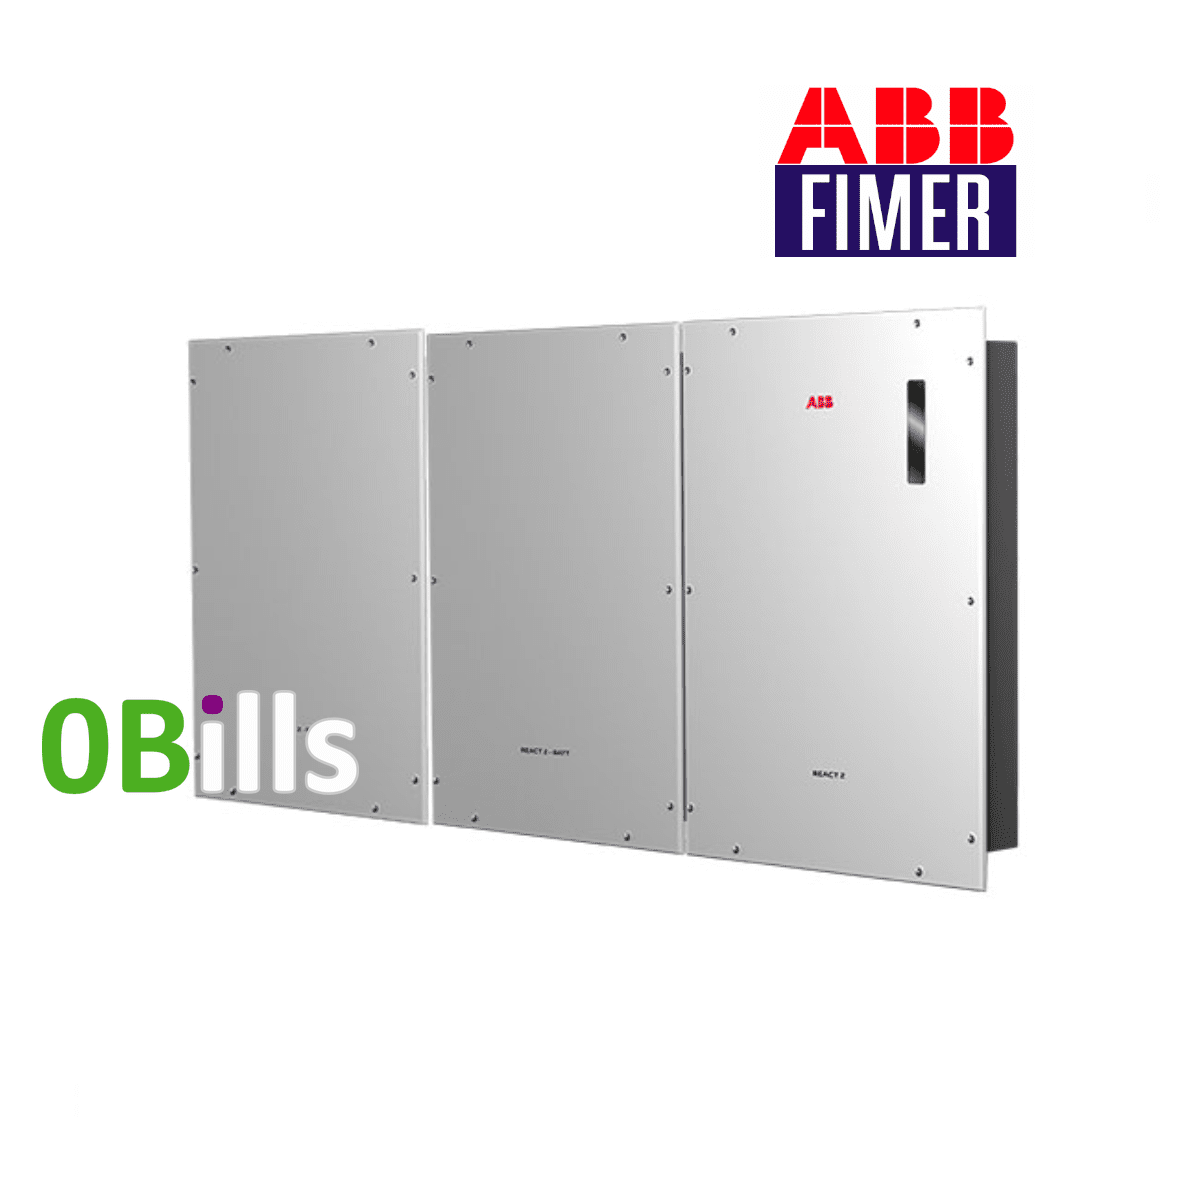 ABB Fimer REACT2-UNO-3.6-TL 8kW Modular Lithium Battery Storage